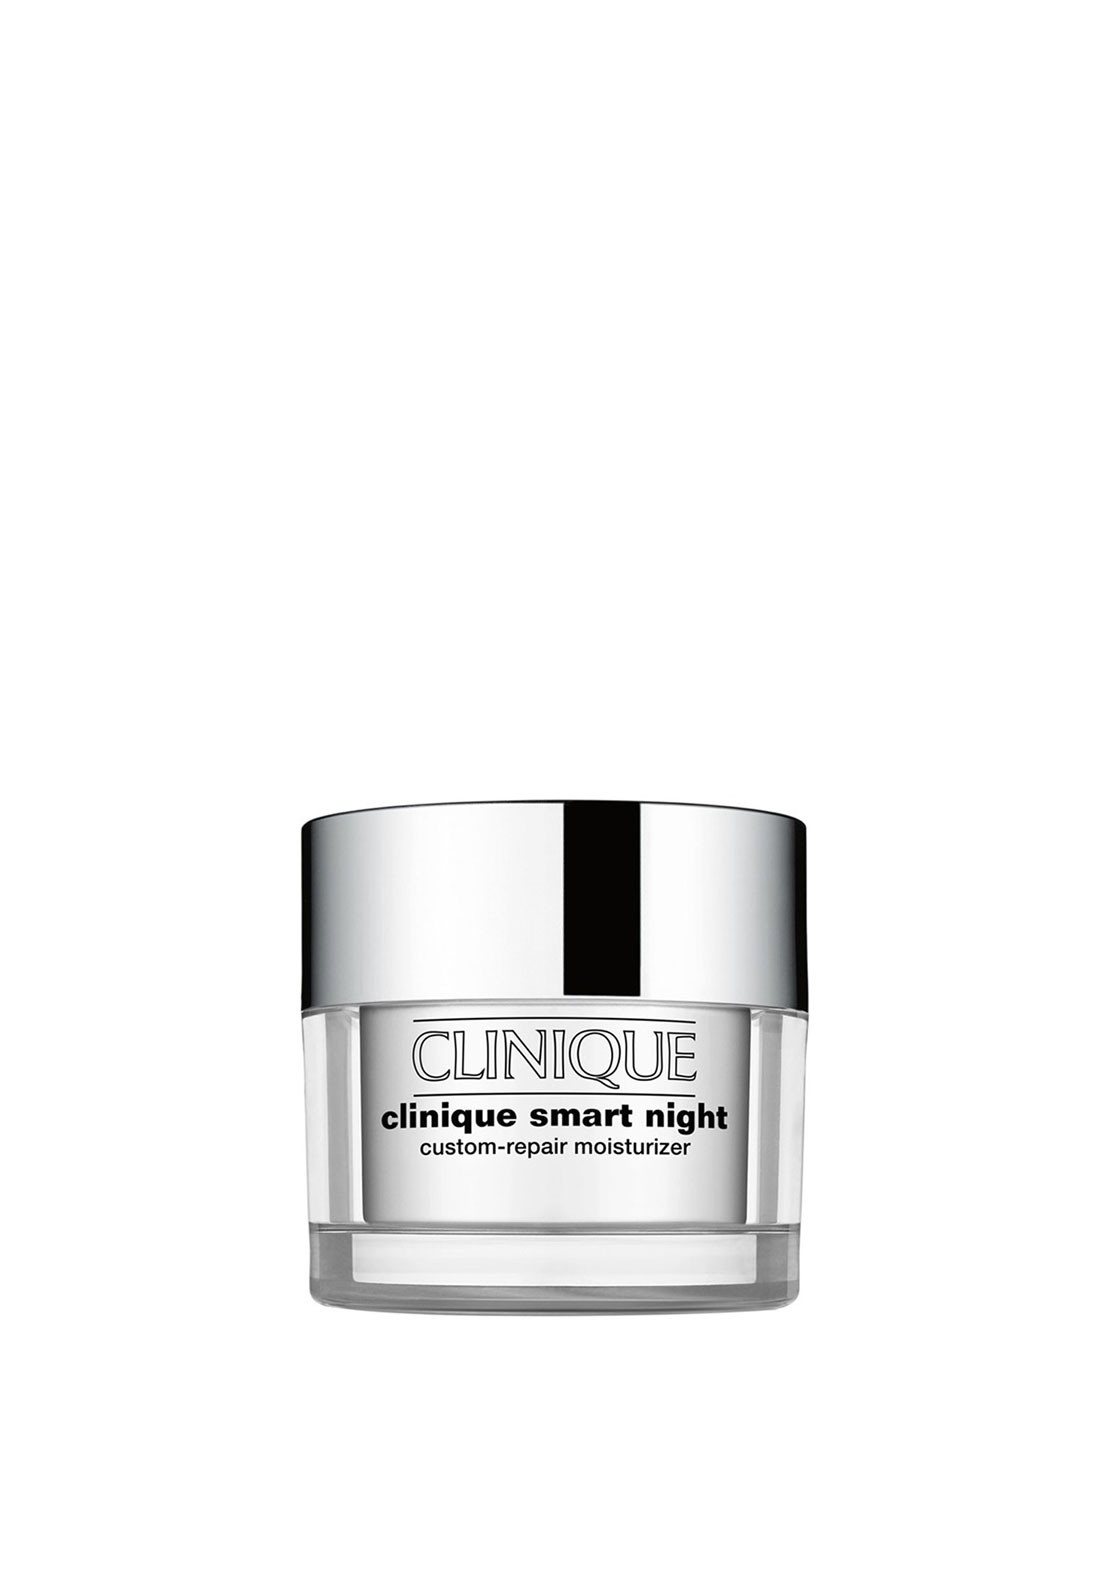 Clinique Smart Night Custom-Repair Moisturizer Cream, Very Dry to Dry